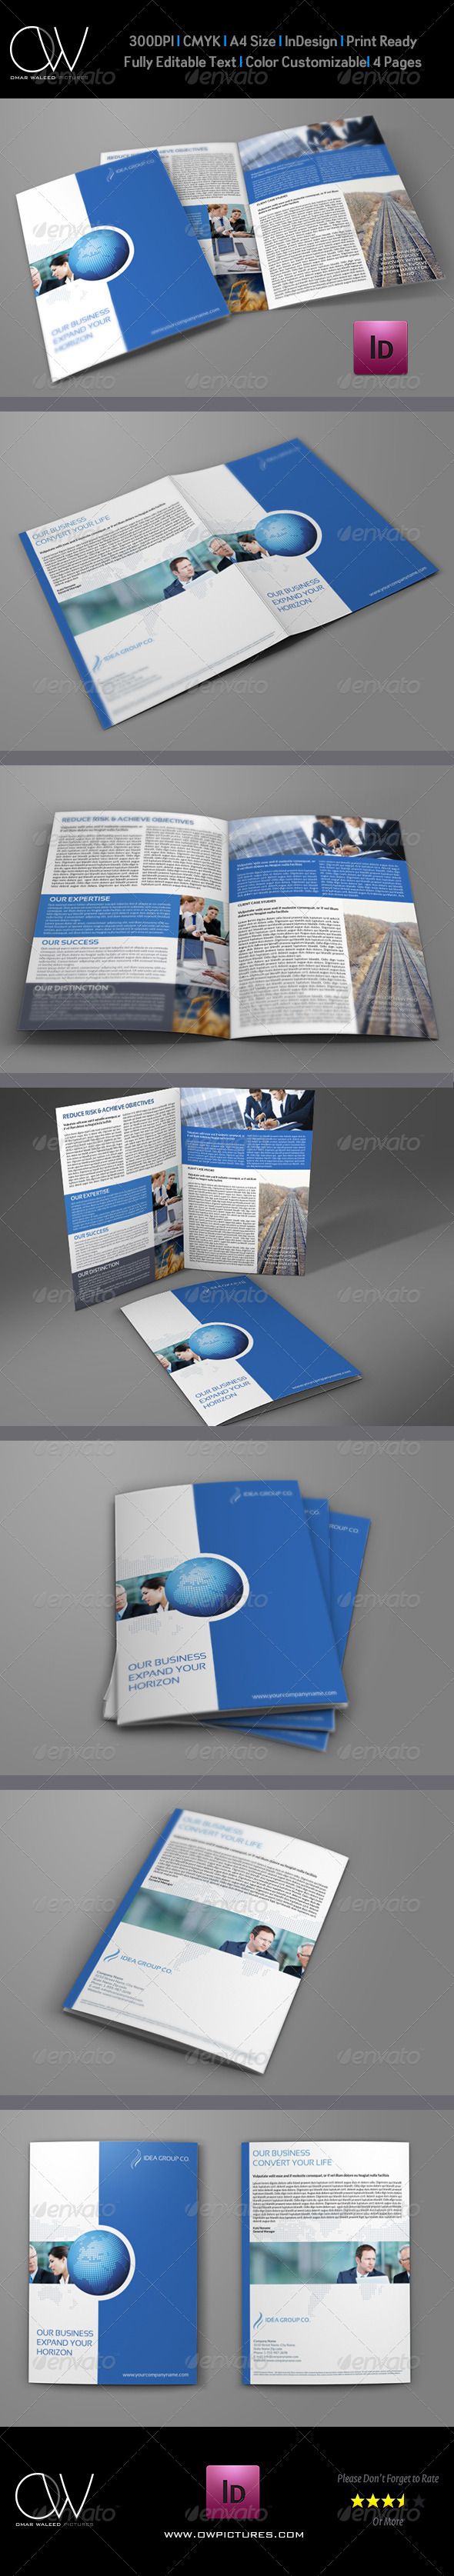 Company Brochure Bi-Fold Template Vol.18 - Corporate Brochures